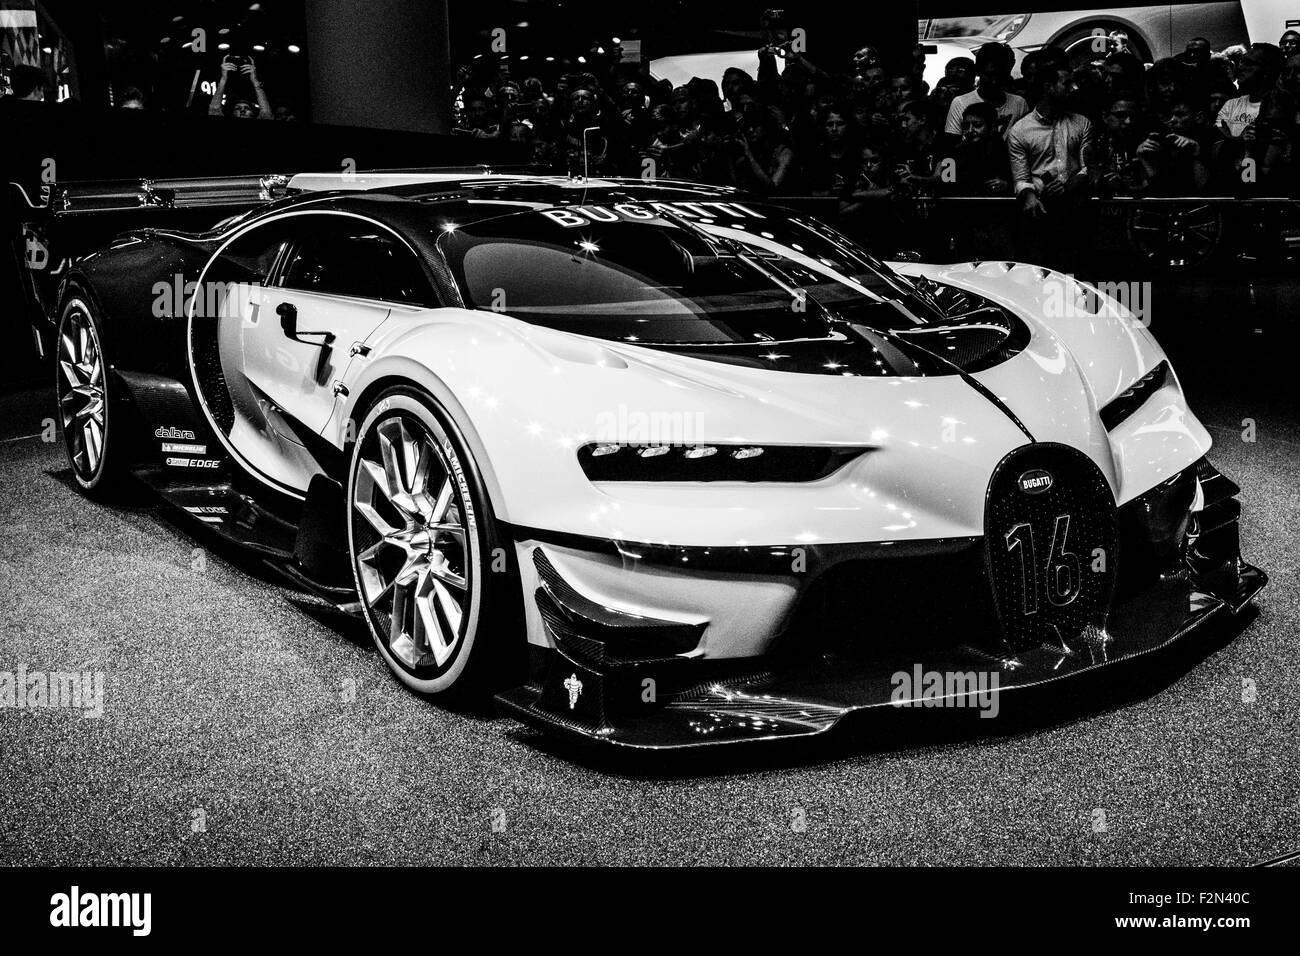 IAA 2015 - 66° Interationale Automobil - Ausstellung - Stock Image